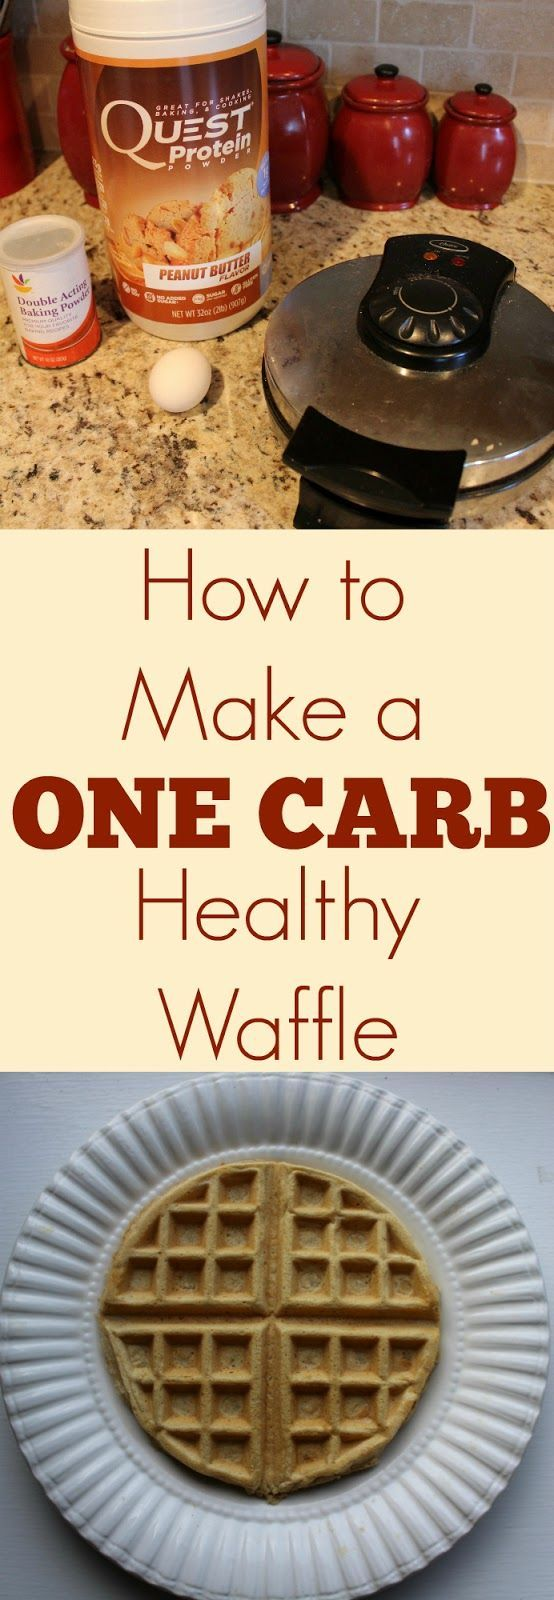 recipe is a game changer.  Have you heard of a one carb waffle before? Essentially it's a waffle....that ONLY HAS ONE DANG CARB IN THE...